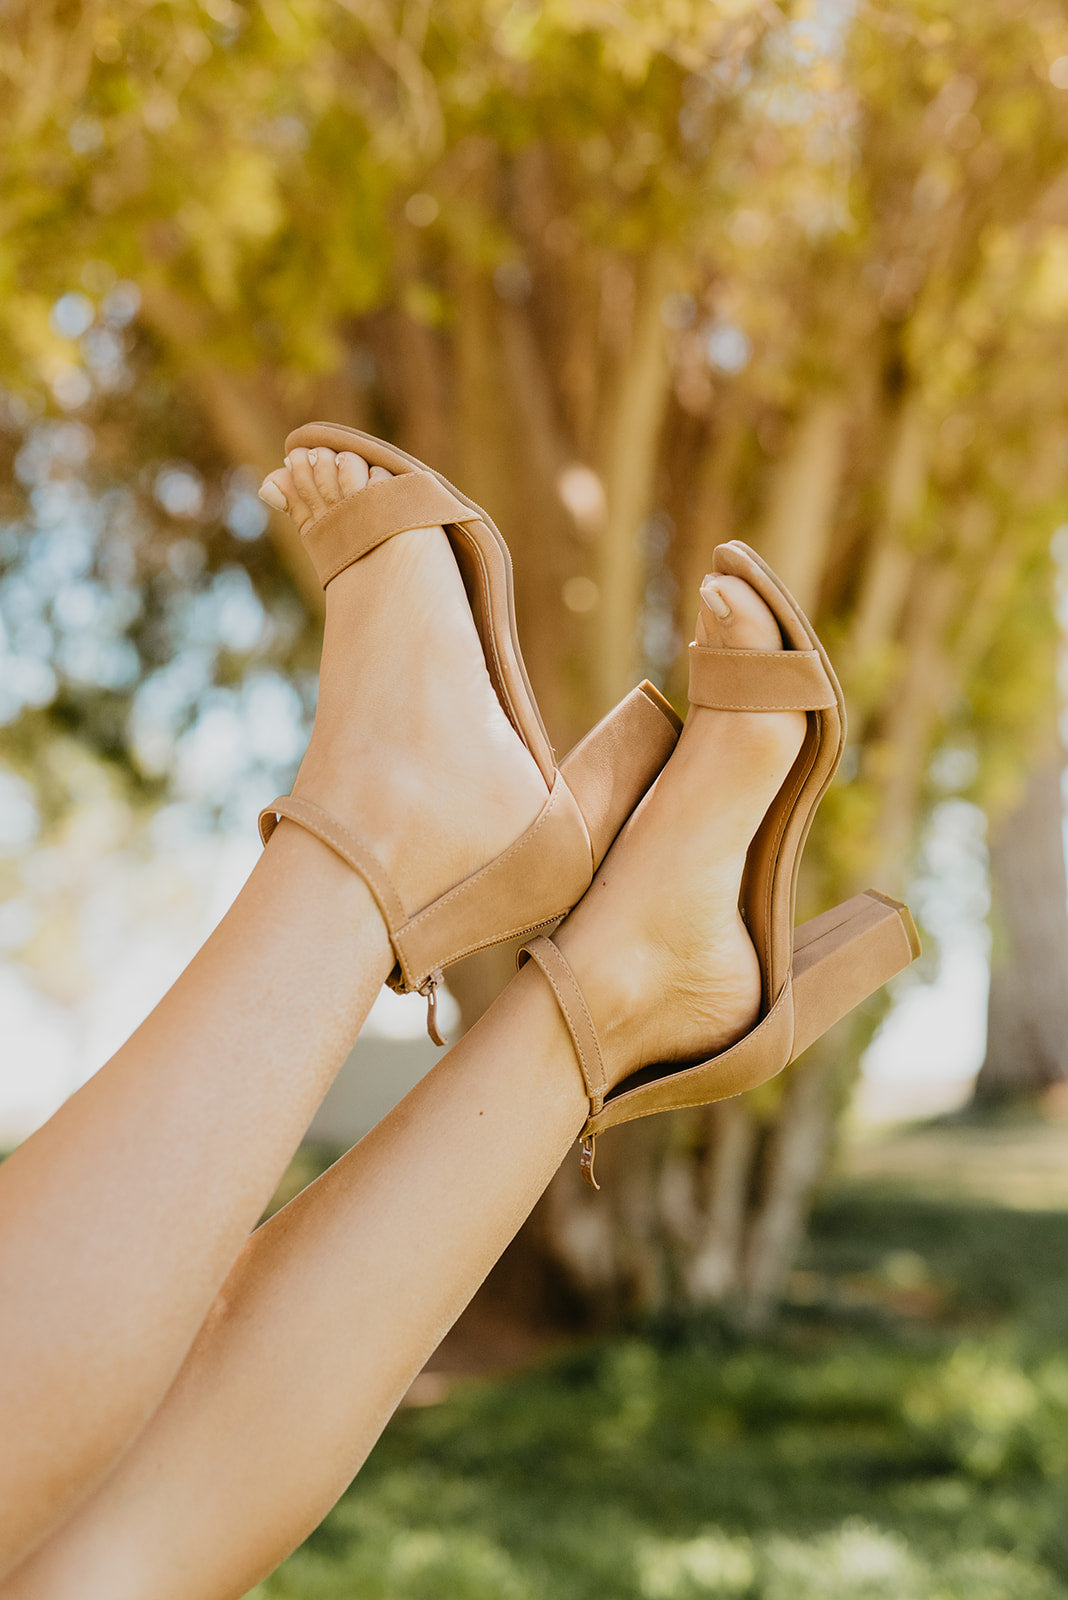 THE GAYLE ANKLE STRAP HEEL IN NATURAL